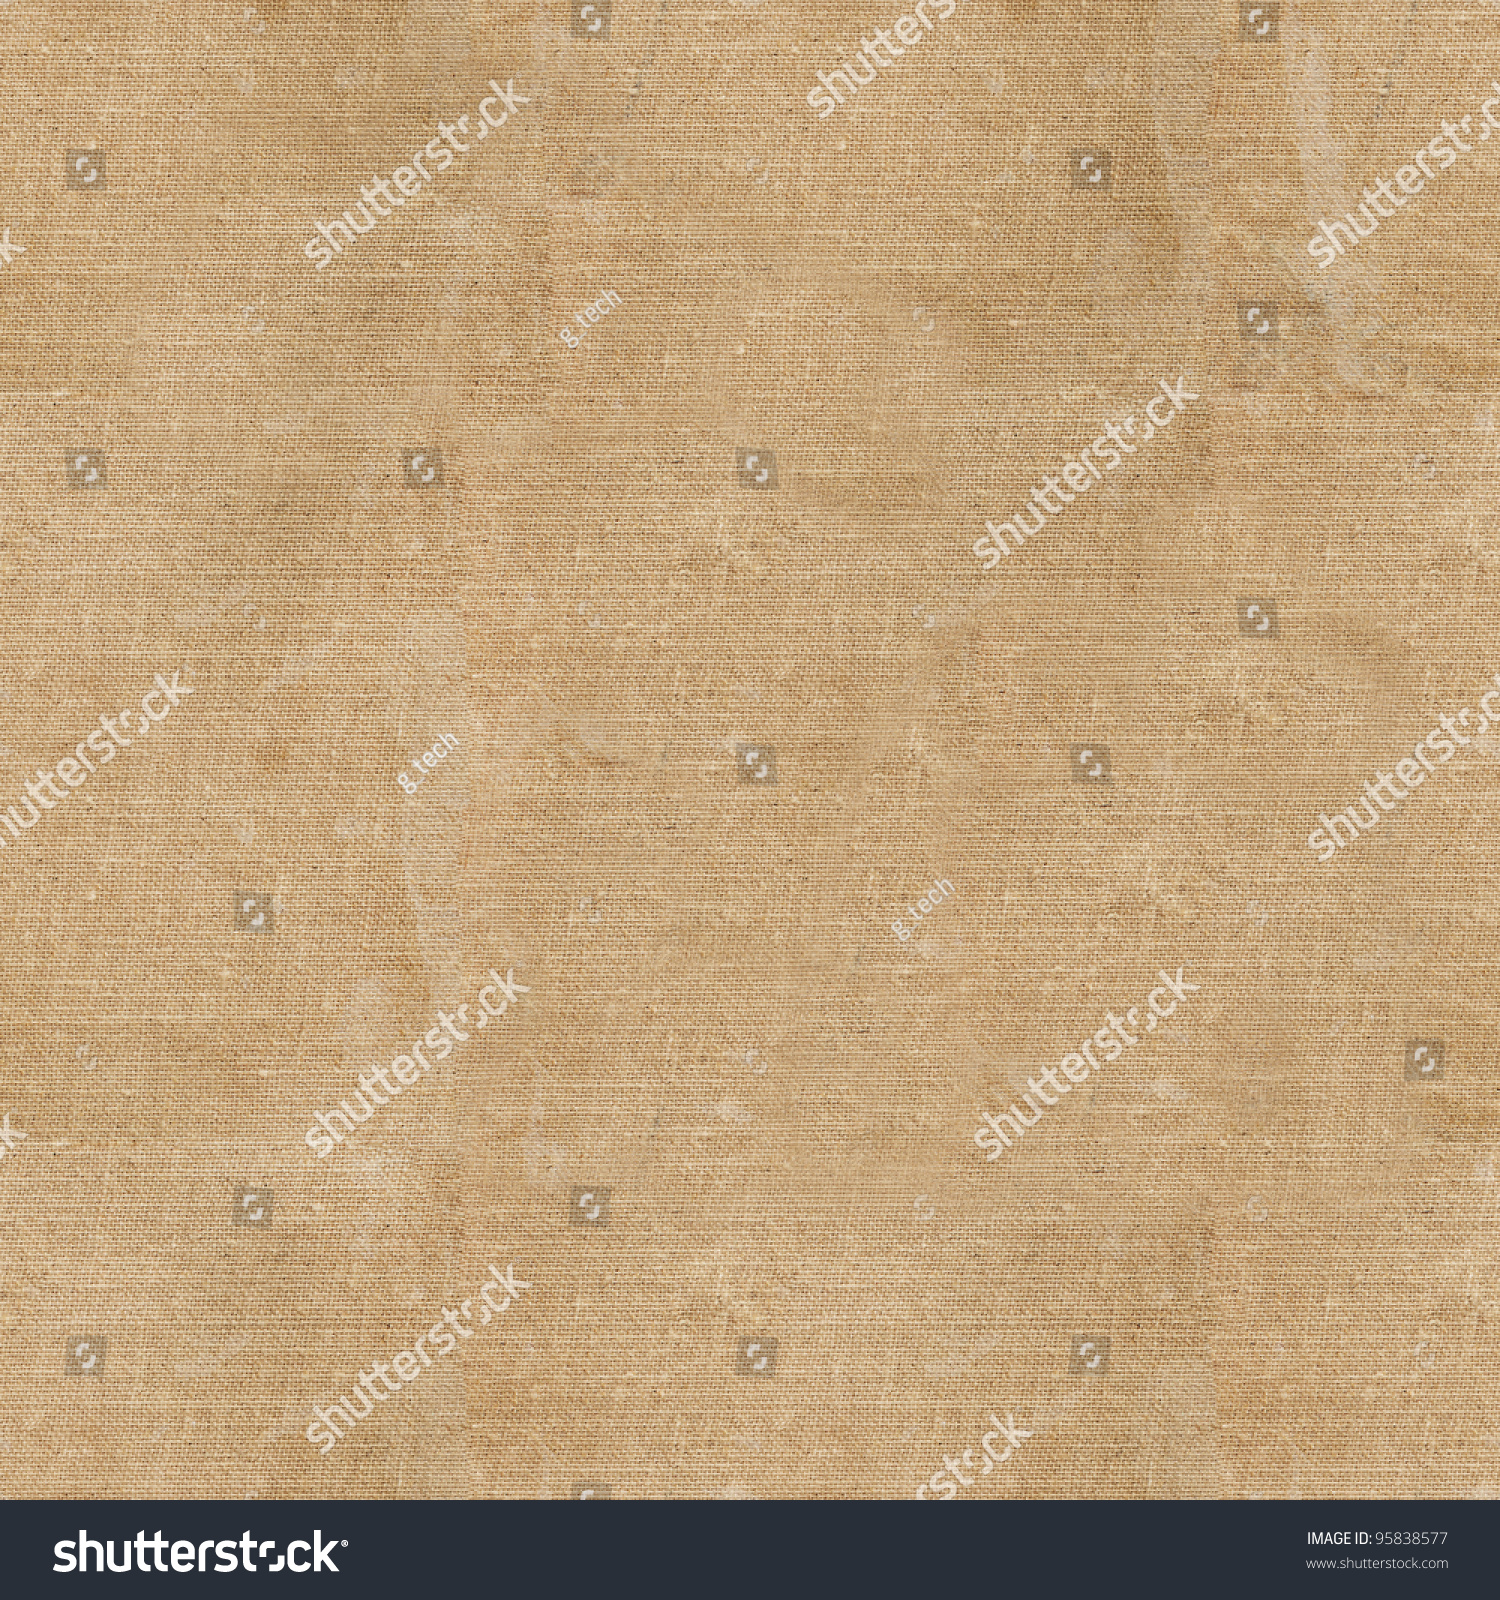 Fabric Book Cover Texture : Old book in a cloth cover on white background seamless